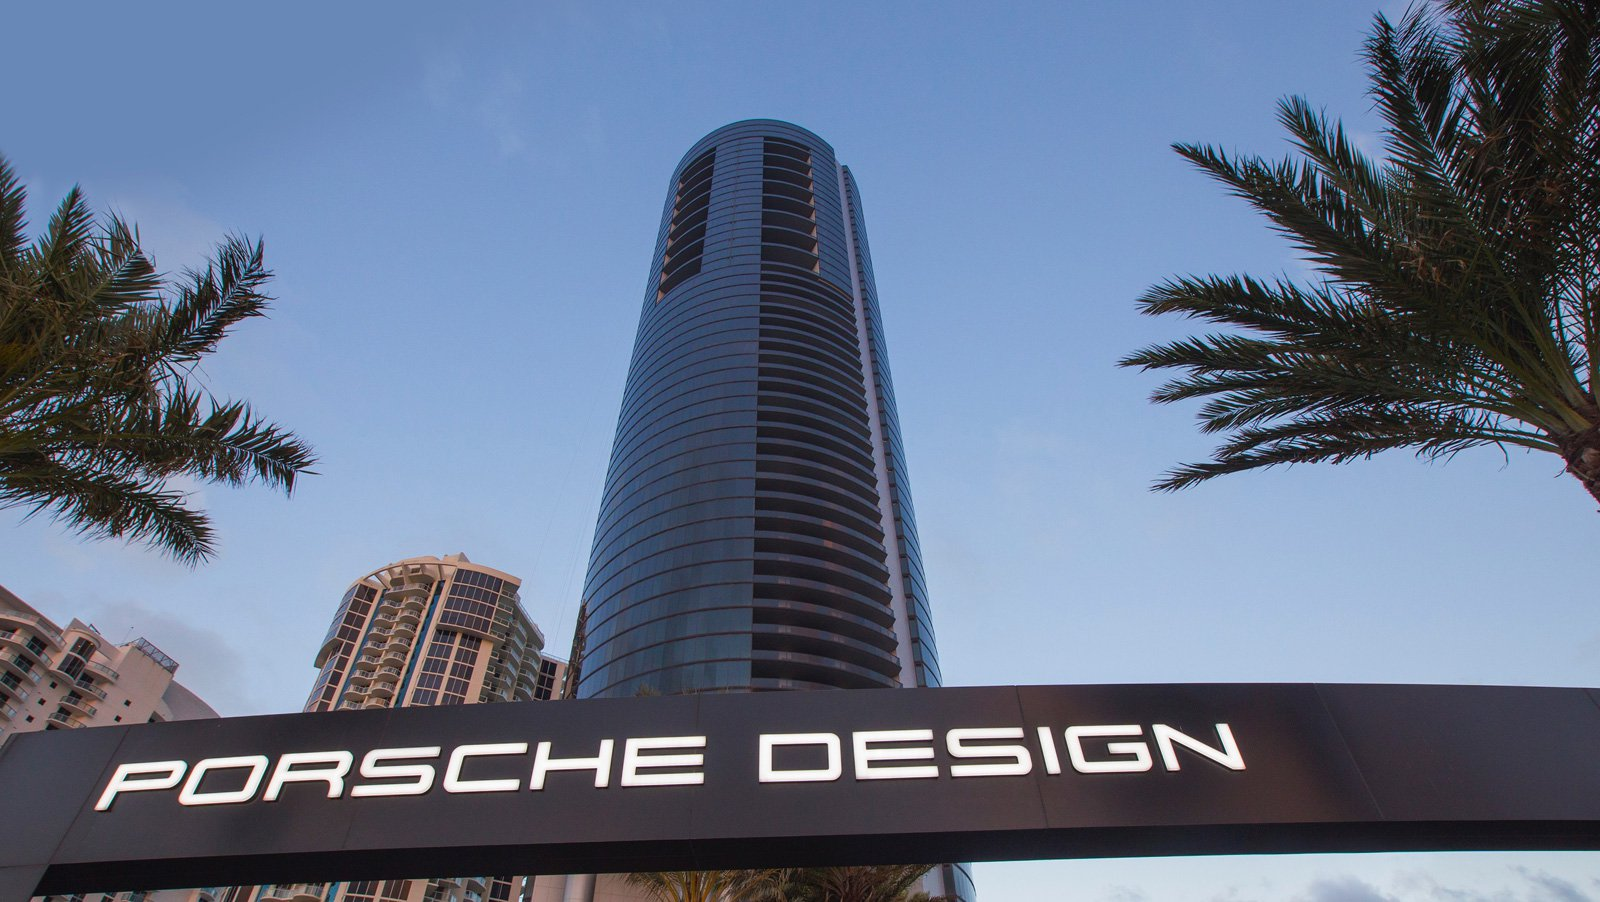 Porsche Design Takes Luxury Living to a Whole New Level